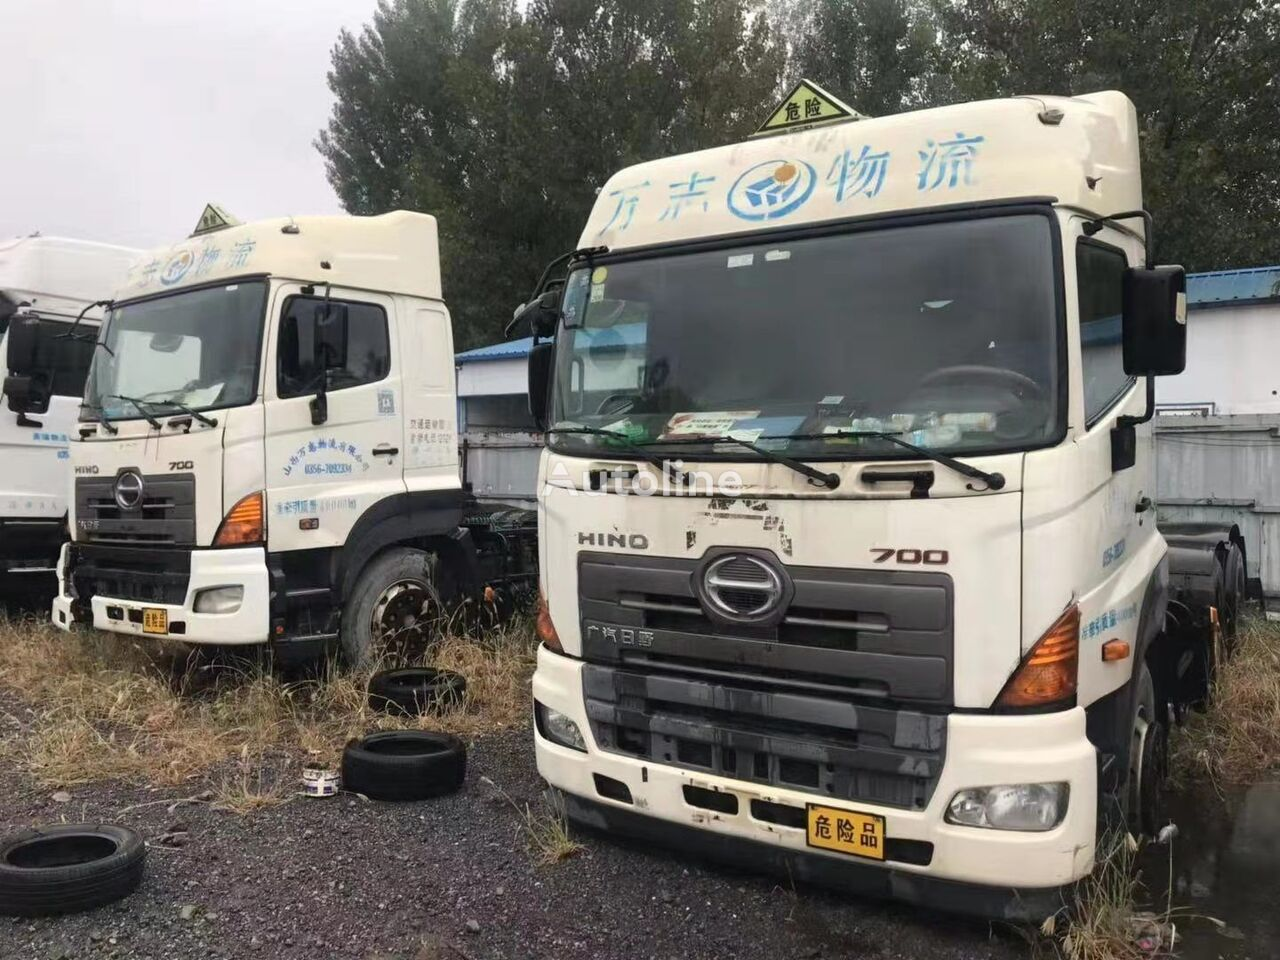 trattore stradale HINO USED  HINO  700  TRACTOR  FOR  SALE